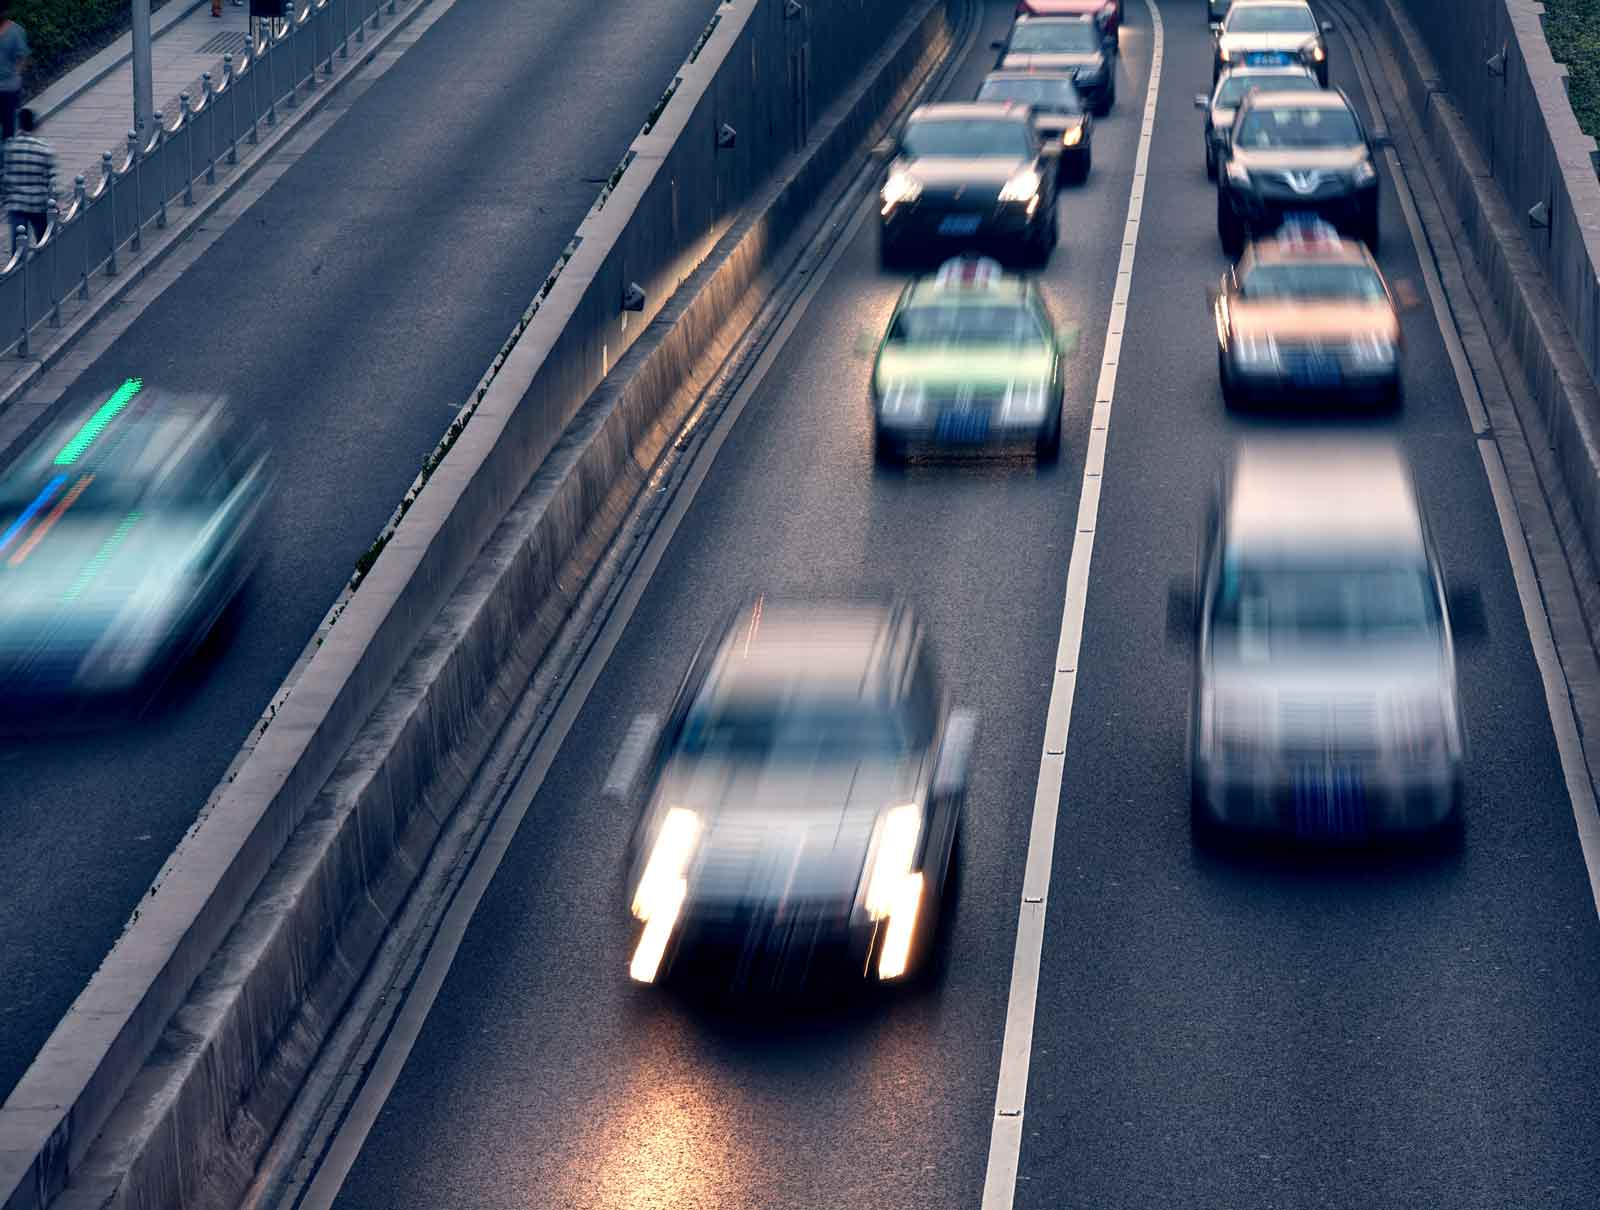 How Do Insurance Companies Calculate Pain and Suffering From a Car Accident?